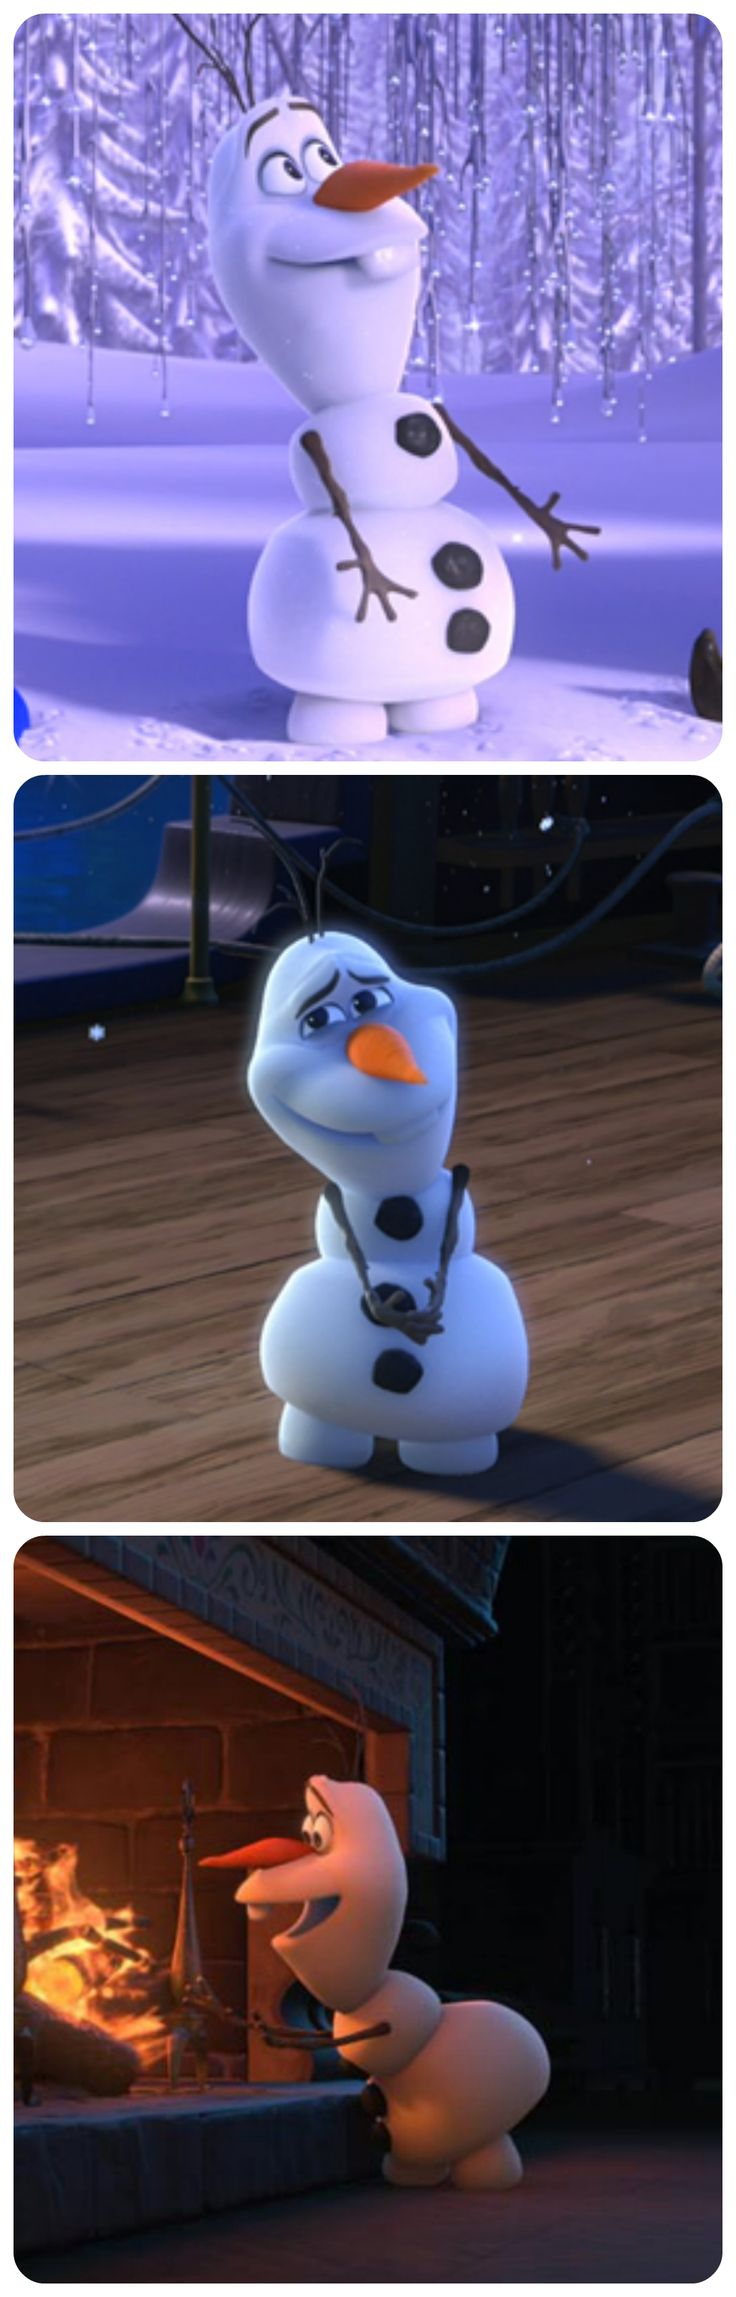 We'd love to share a warm hug with Olaf.